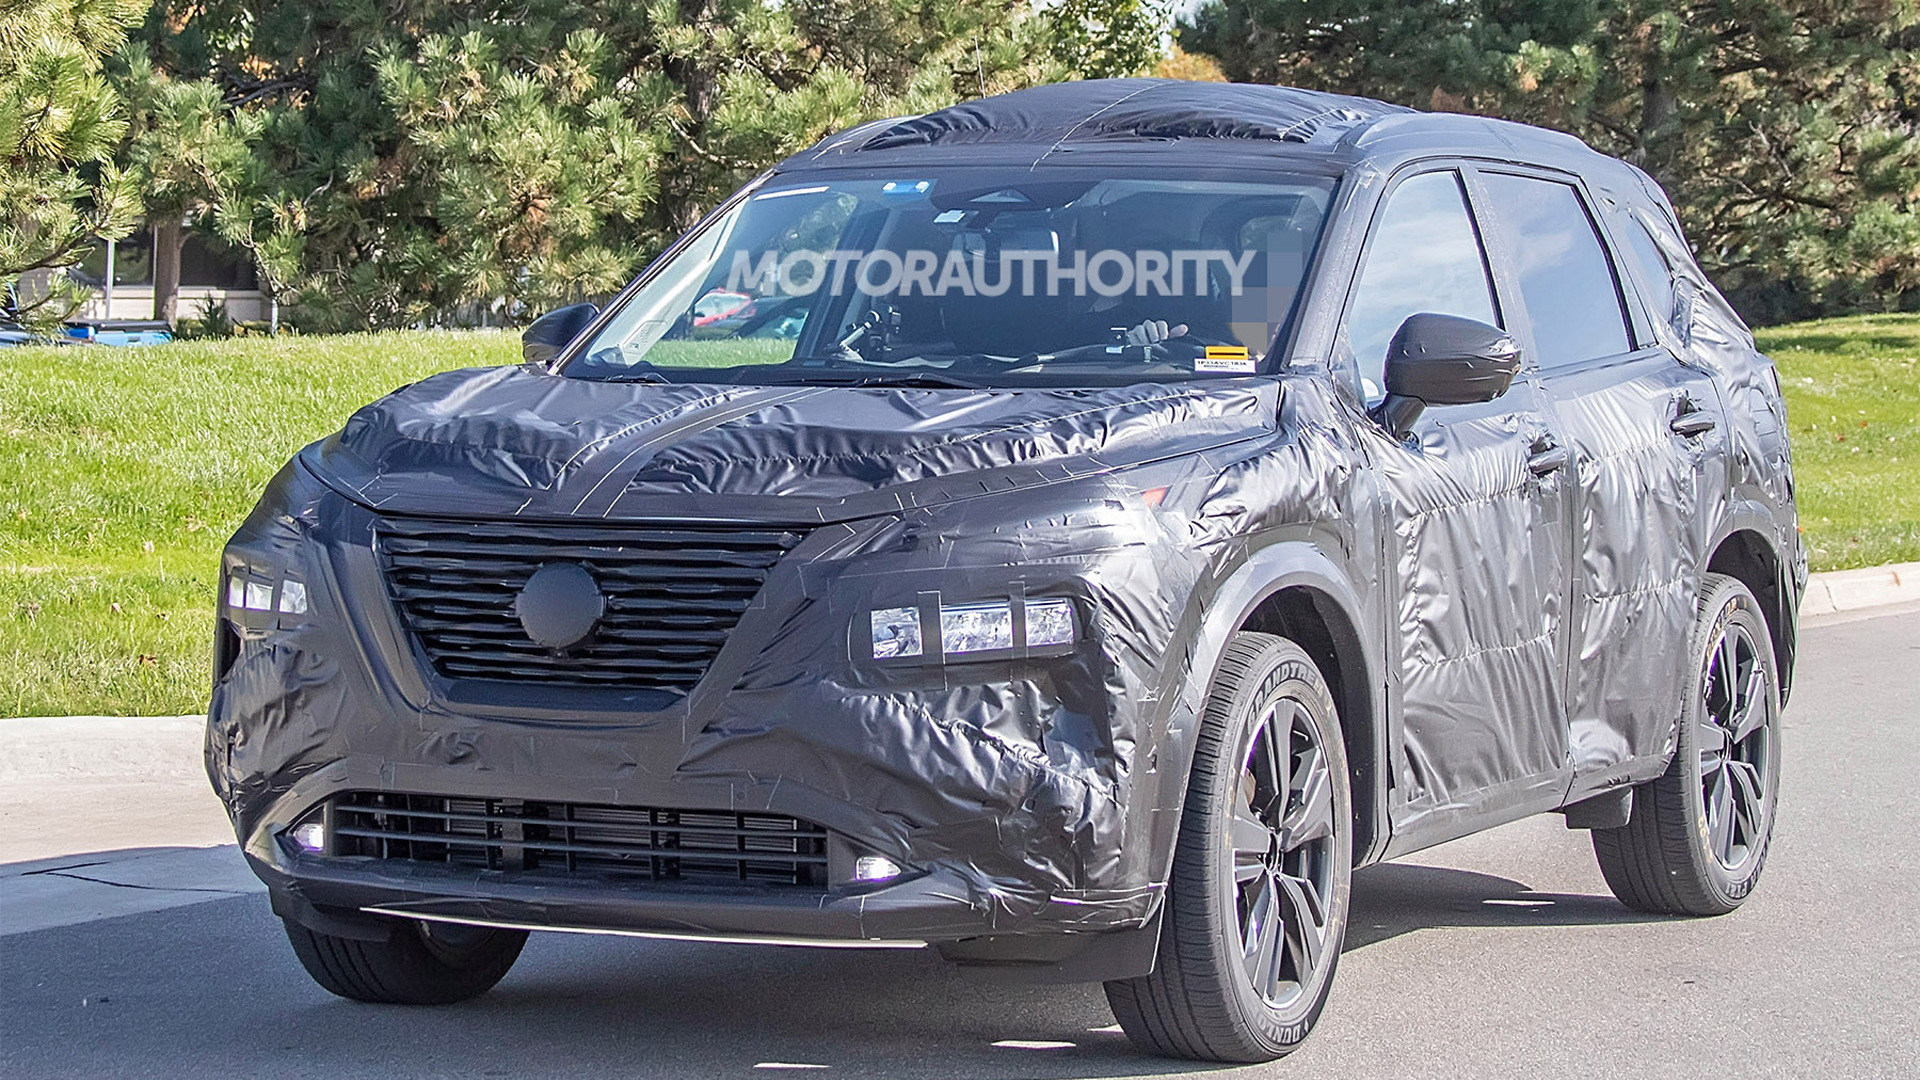 2021 Nissan Rogue spy shots - Photo credit: S. Baldauf/SB-Medien